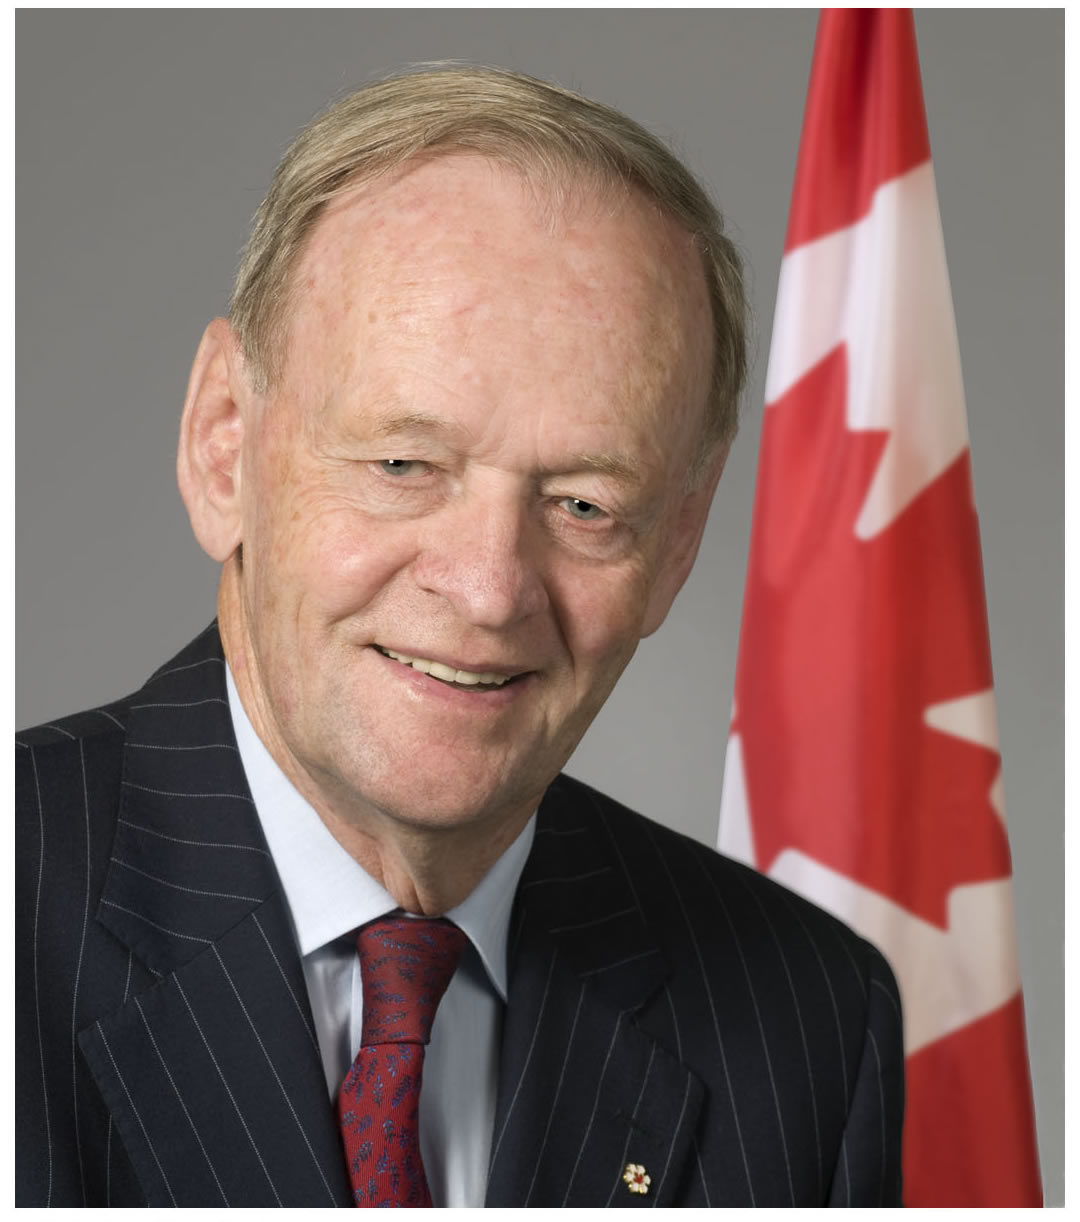 jean chretien The latest tweets from jean chrétien (@jeanchretien12) canadian politician and 20th prime minister of canada.